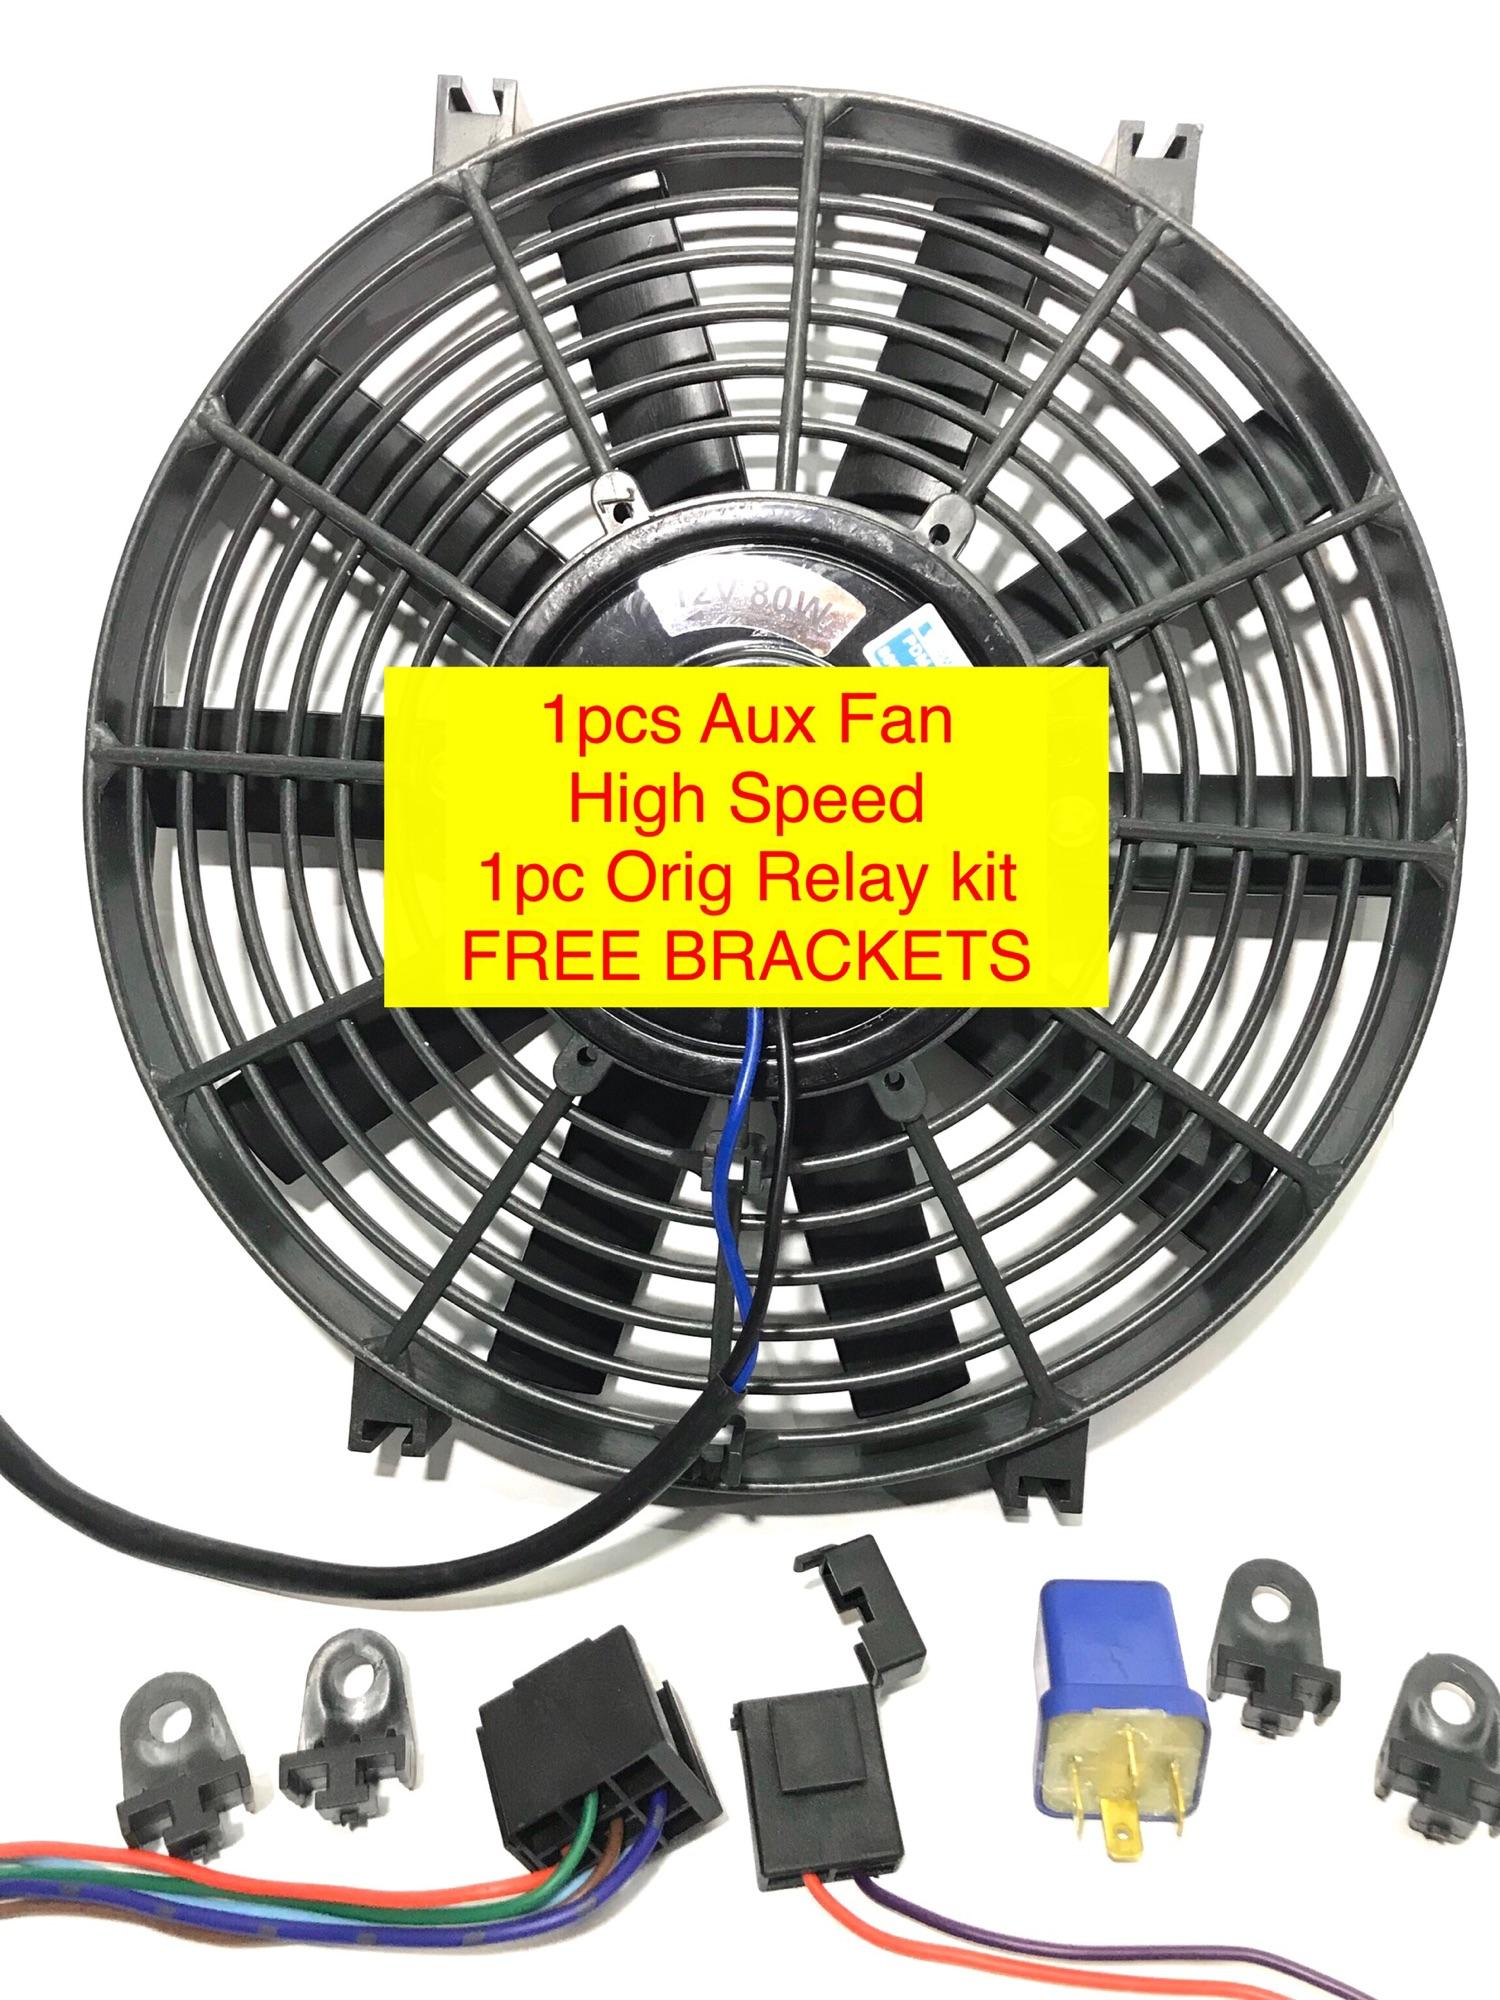 hight resolution of aux fan universal 12v original with relay kit universal car aircon parts